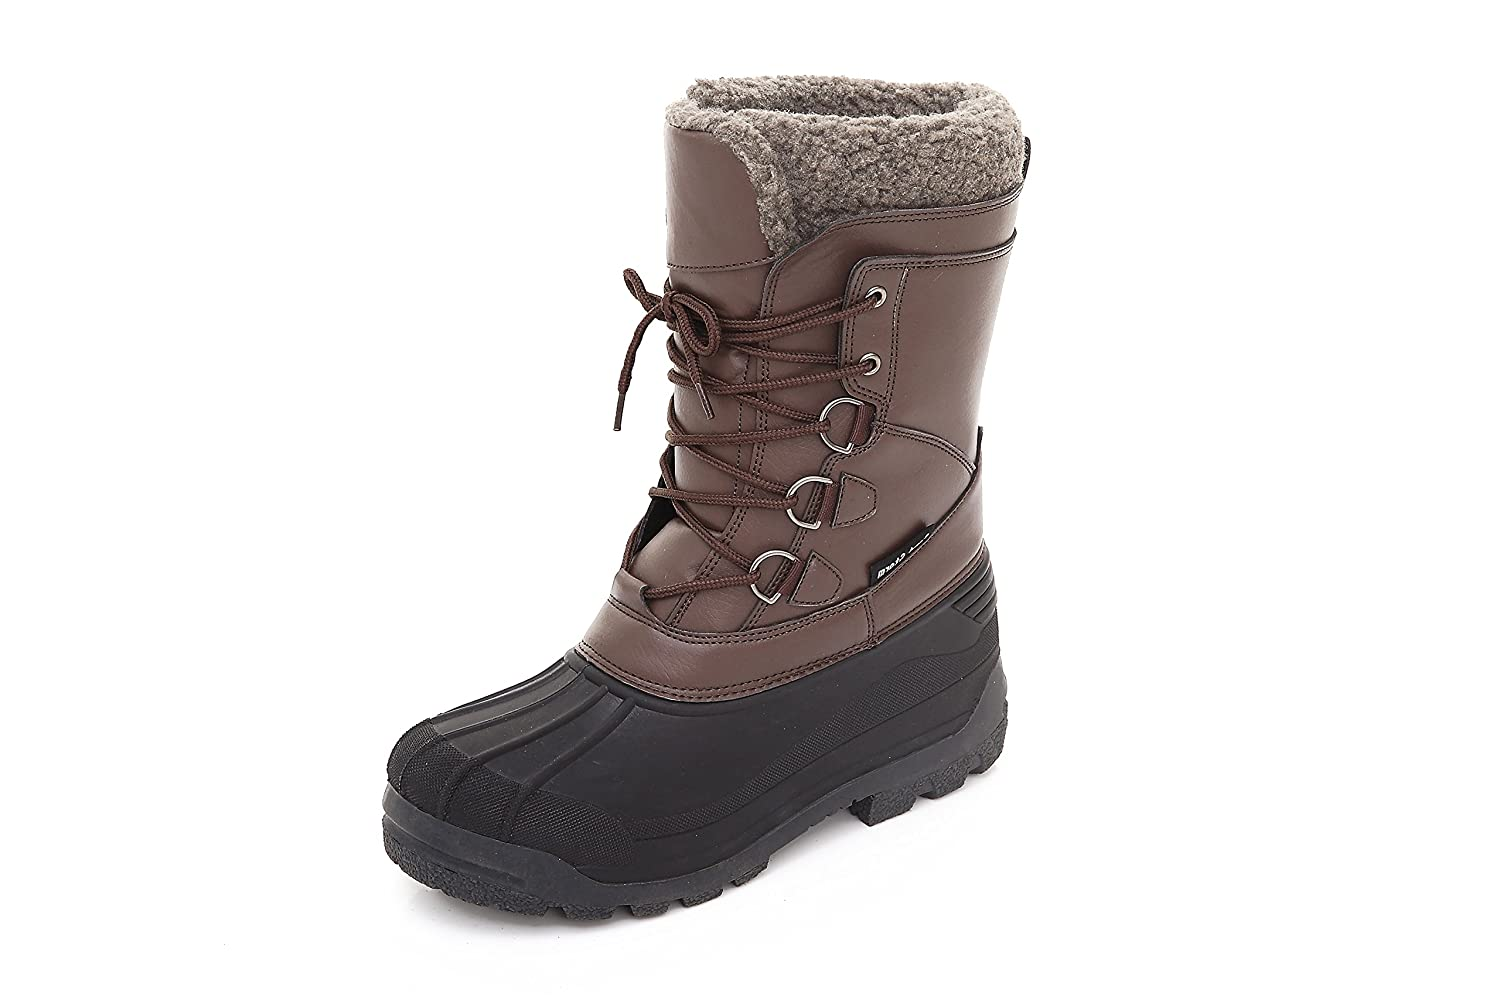 Sand Storm Mens Insulated Winter Snow Boots Lace-up Closure Comfortable Weatherproof Warm